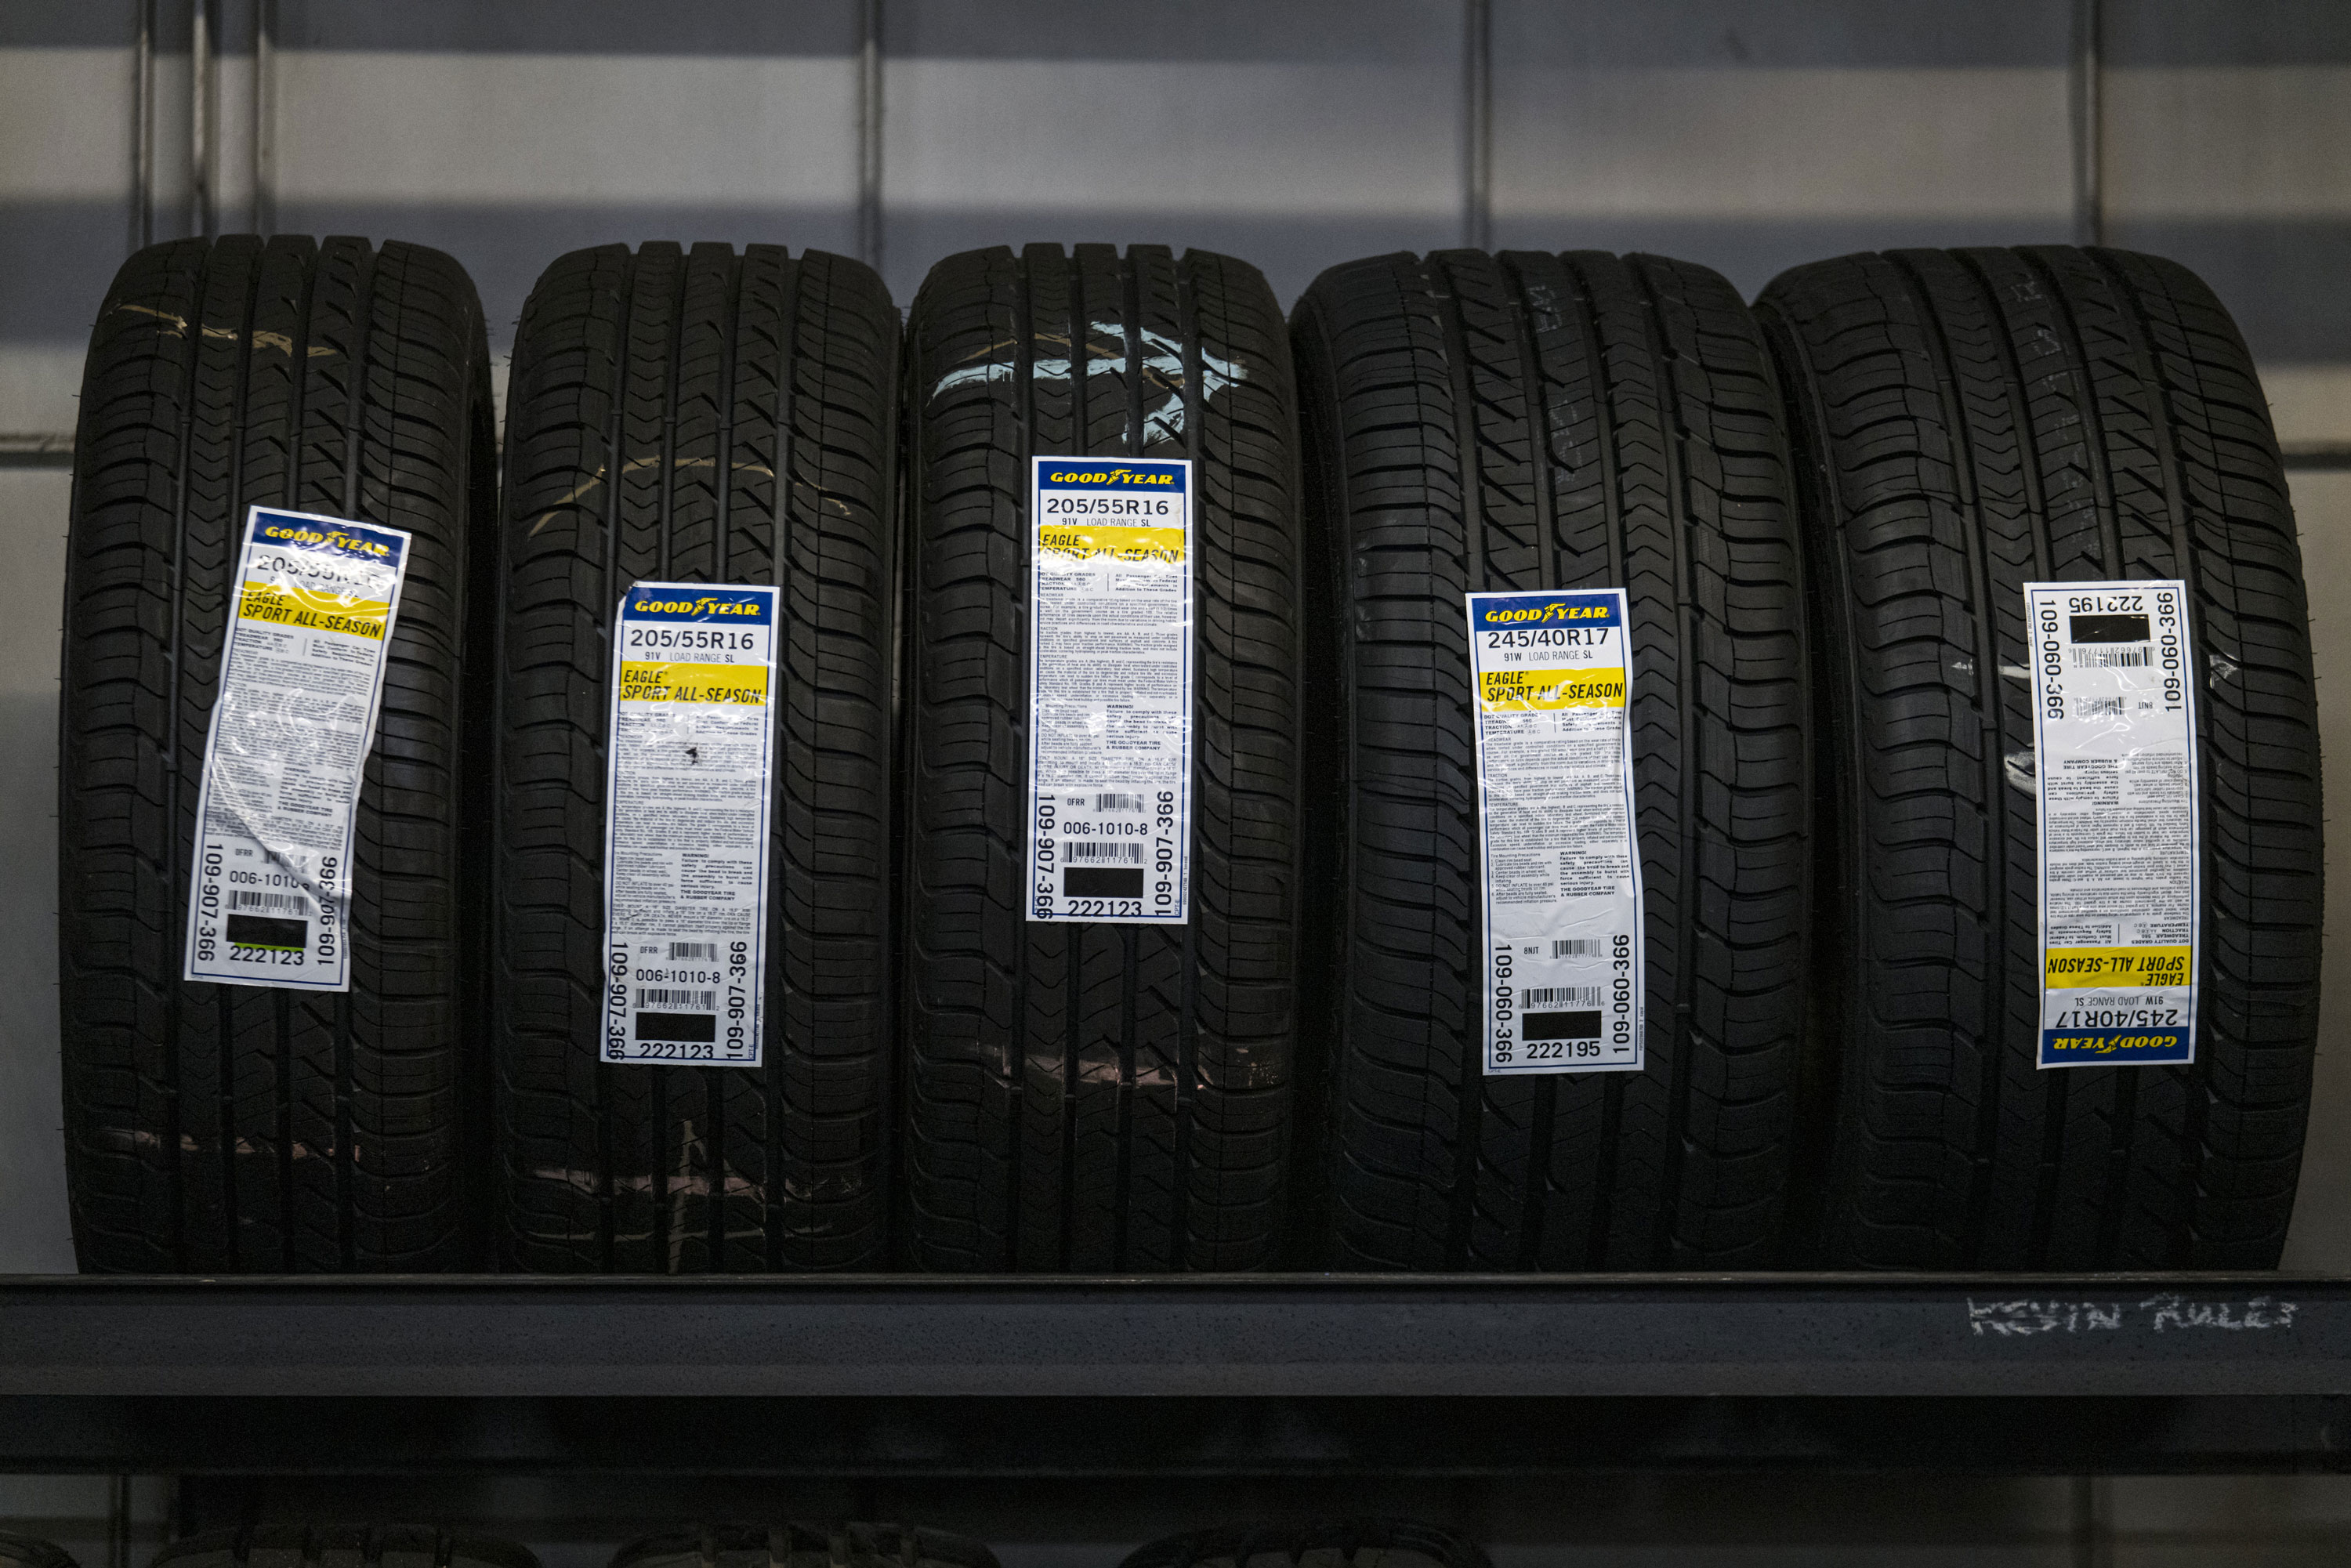 Goodyear is going big in China with $2.8 billion takeover of Cooper